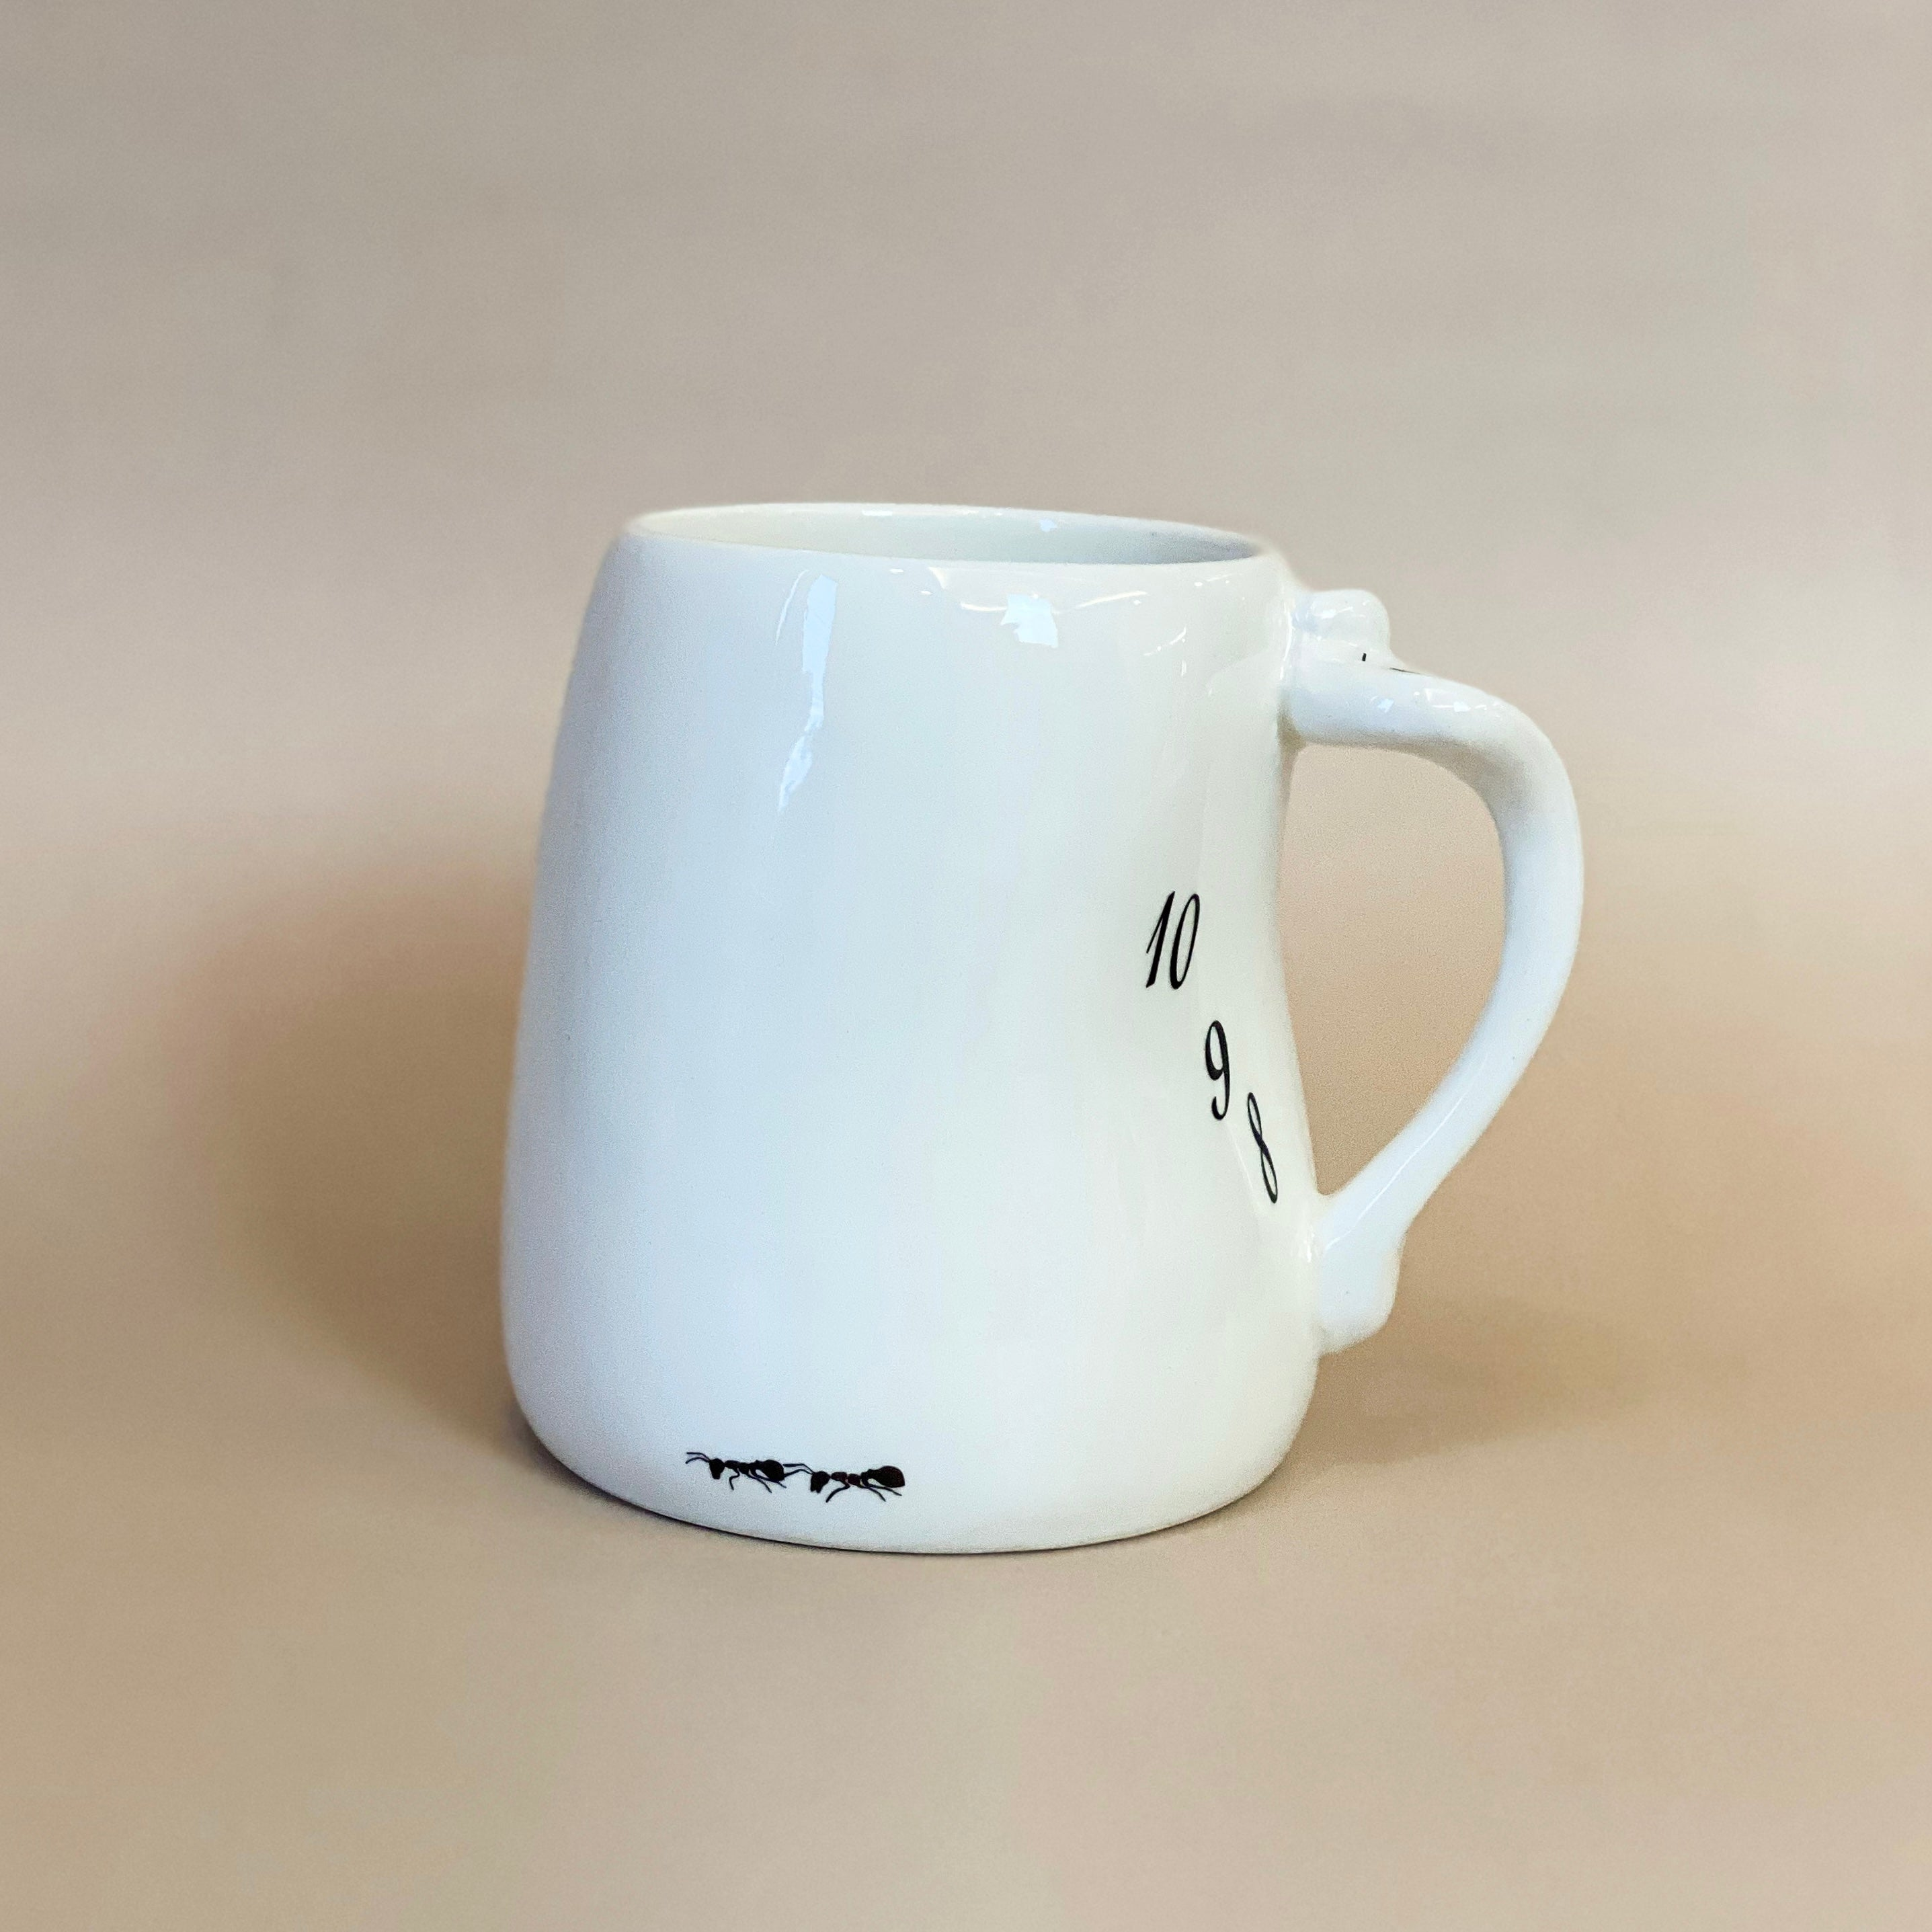 Salvador Dali Porcelain Melting Clock Mug